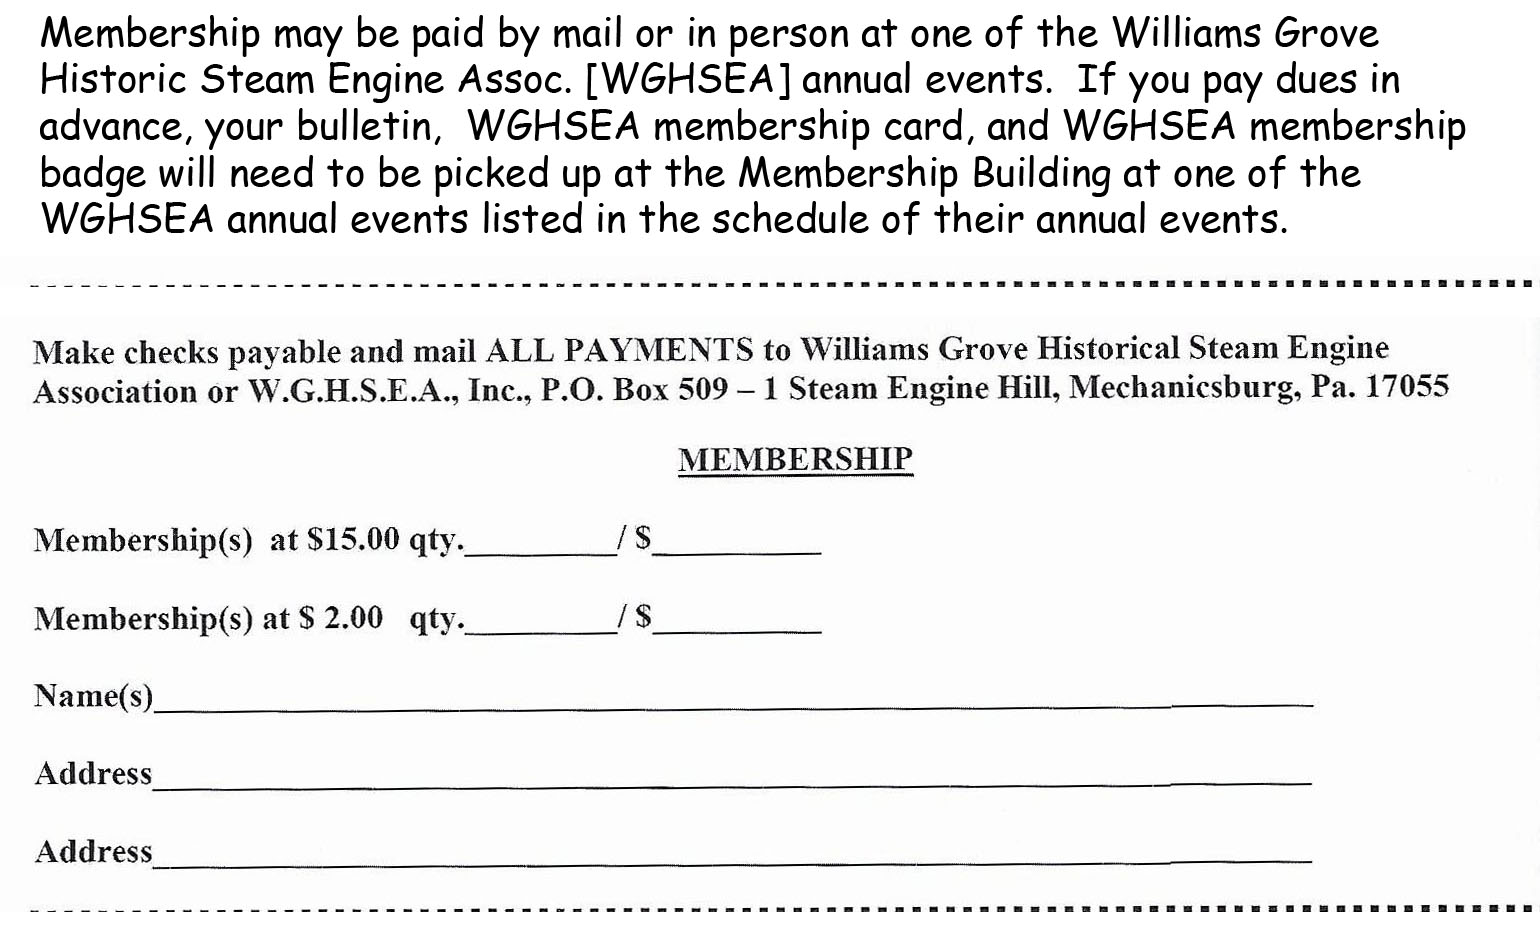 aa - Williams Grove Steamshow Assoc Membership form.jpg